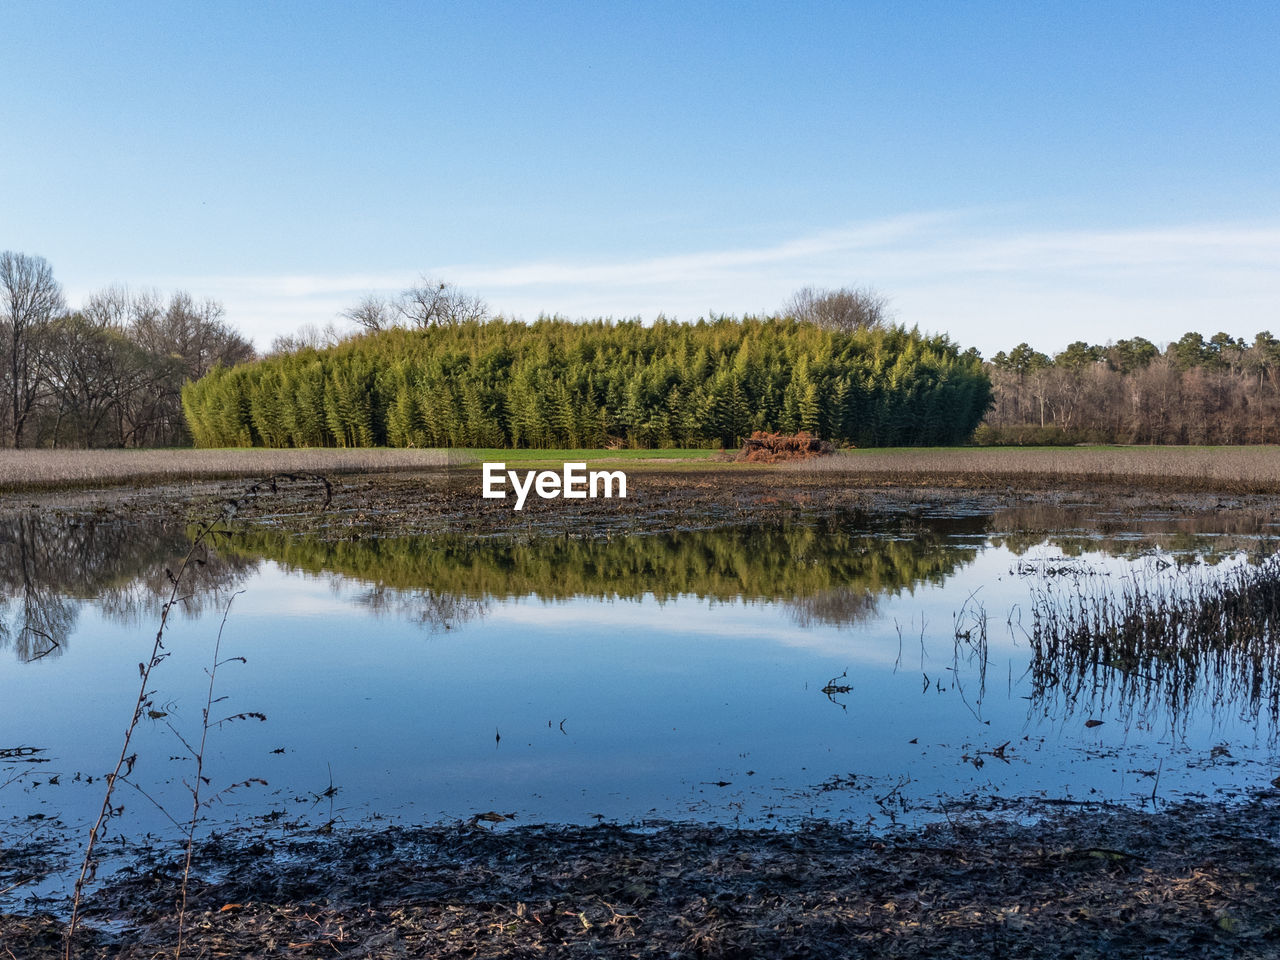 reflection, tree, tranquil scene, nature, water, lake, scenics, beauty in nature, tranquility, outdoors, no people, day, sky